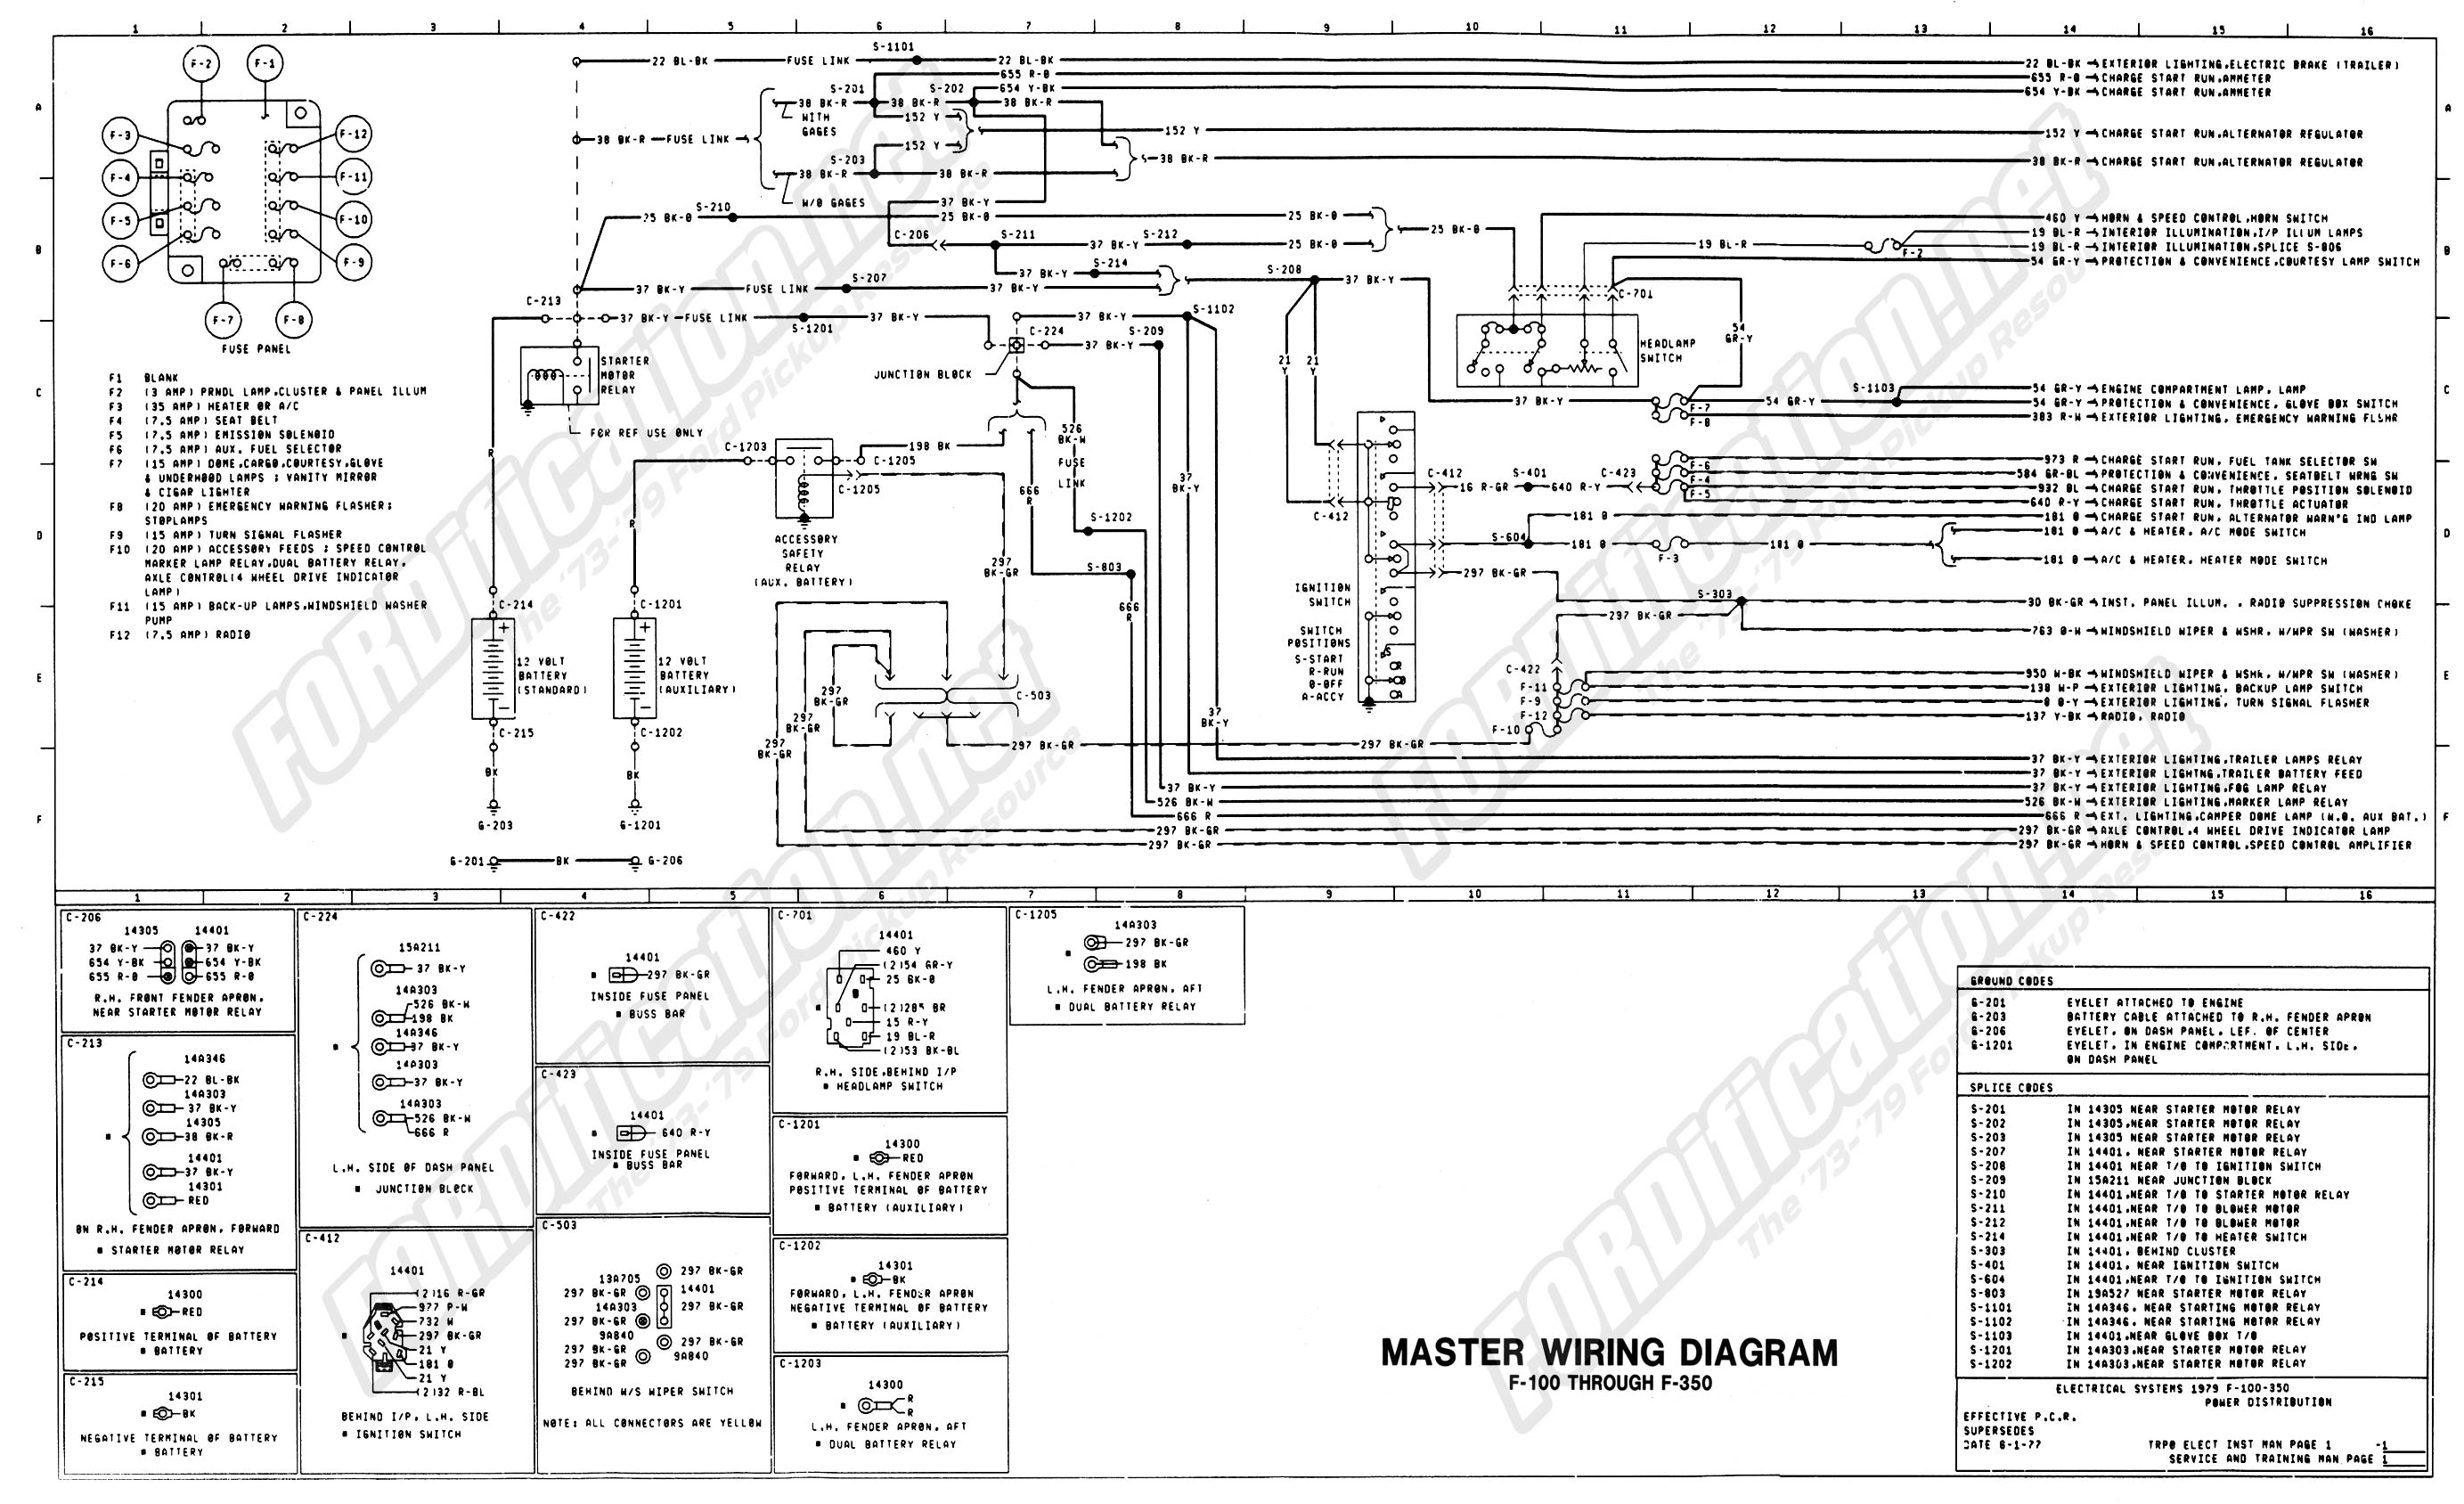 1973 ford truck wiring diagram 1973 ford ignition wiring diagram international truck wiring diagram collection #10